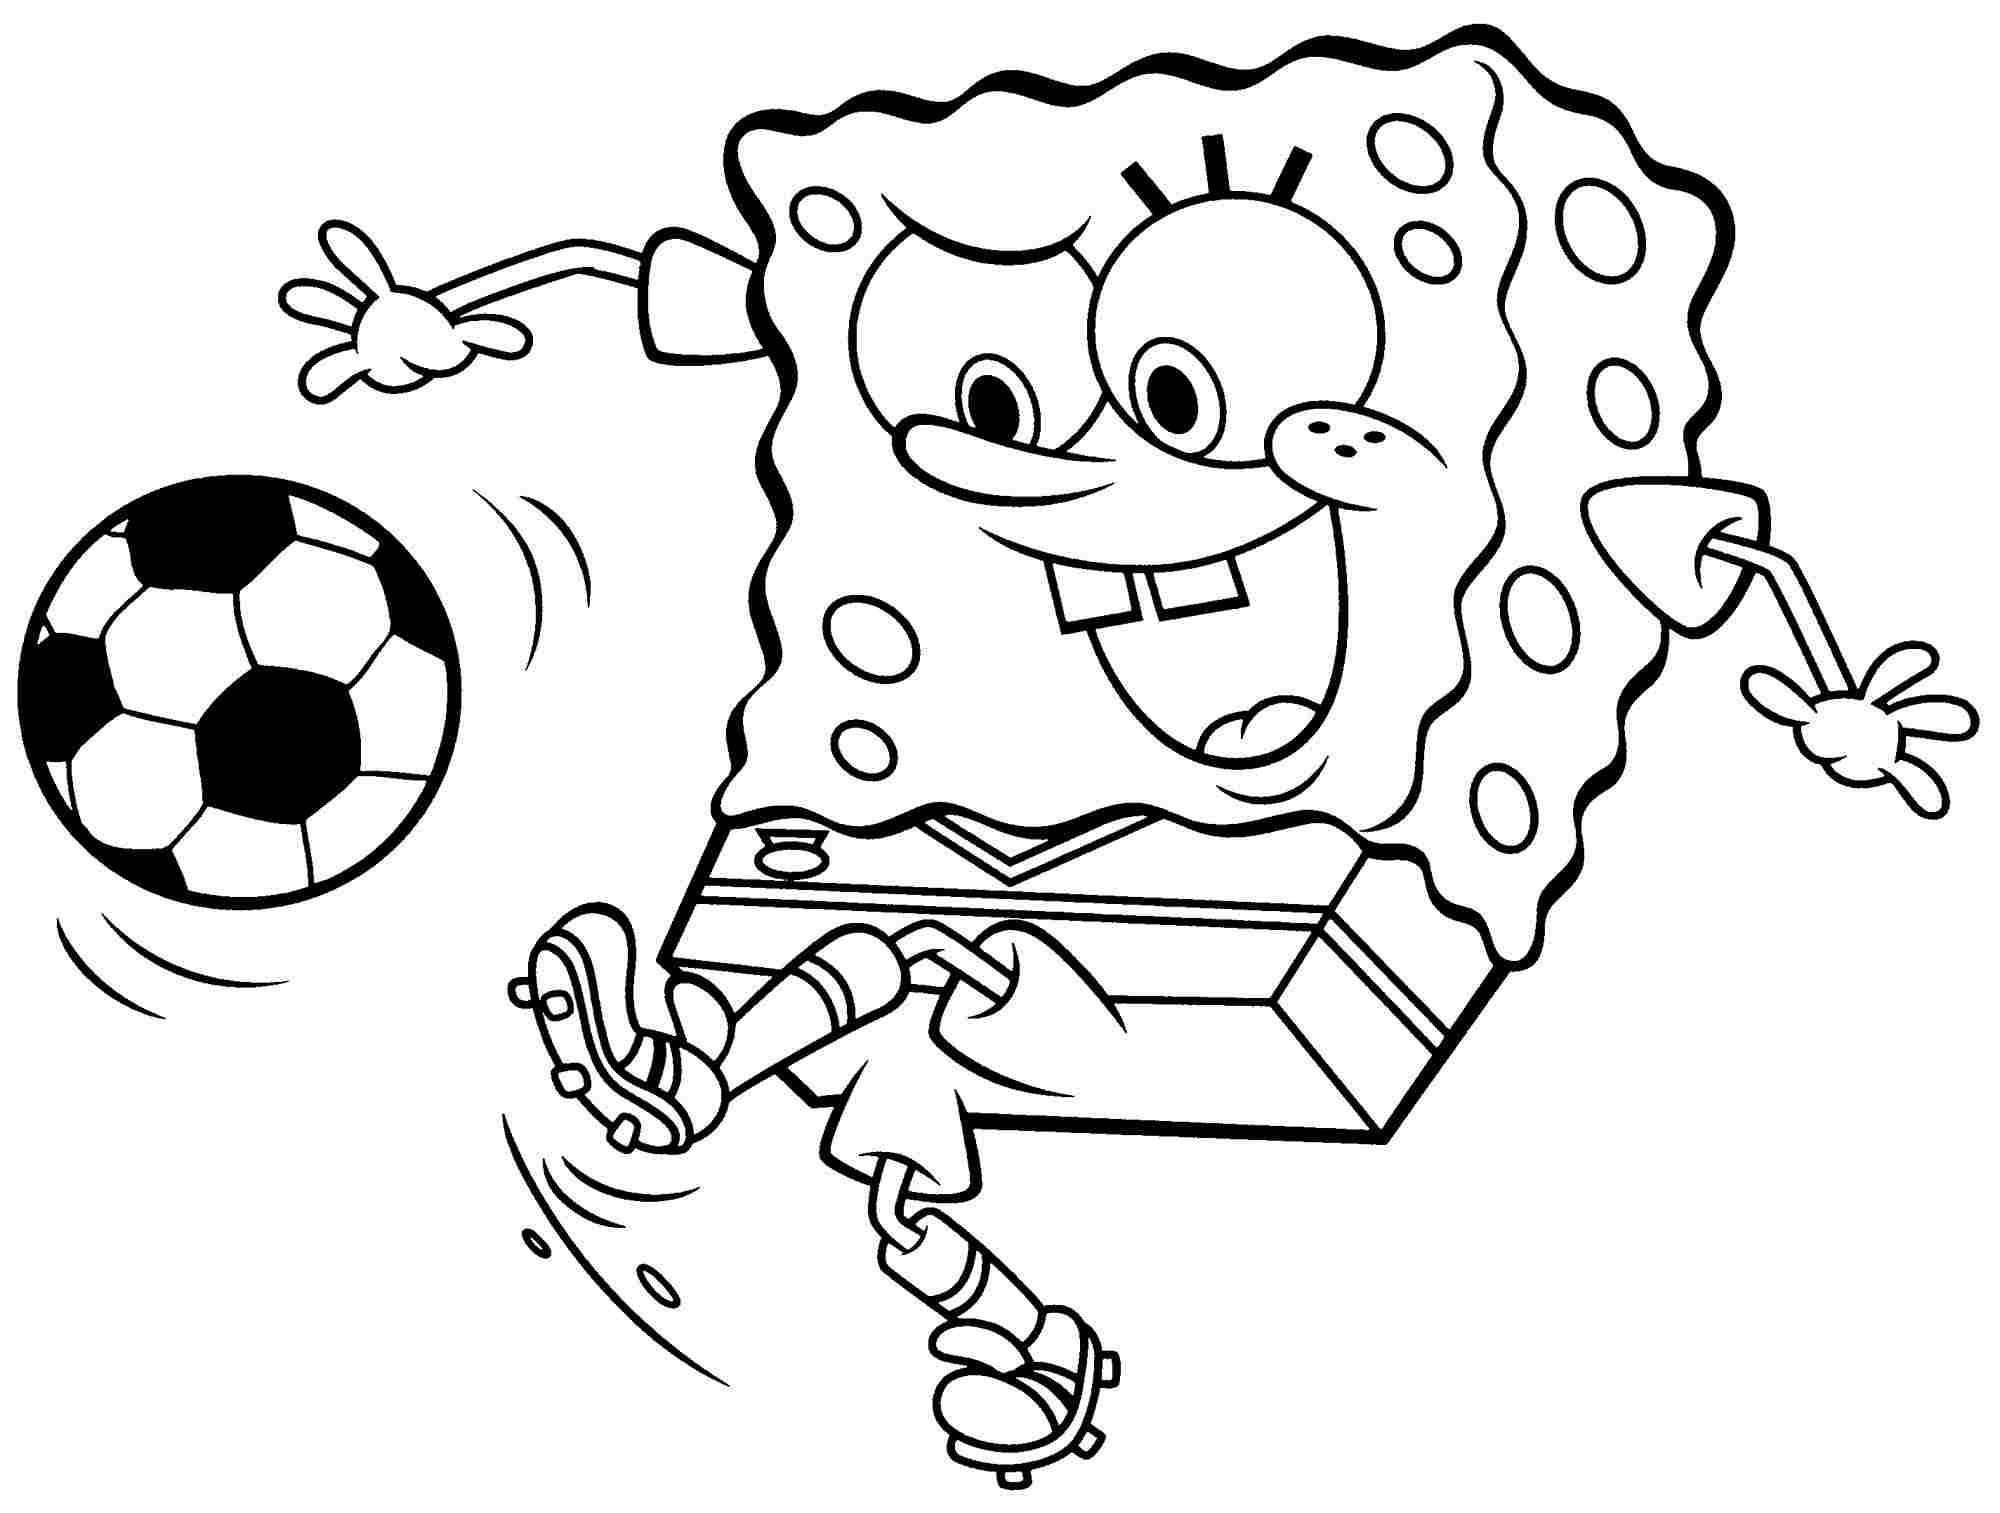 spongebob fun coloring pages - photo#10